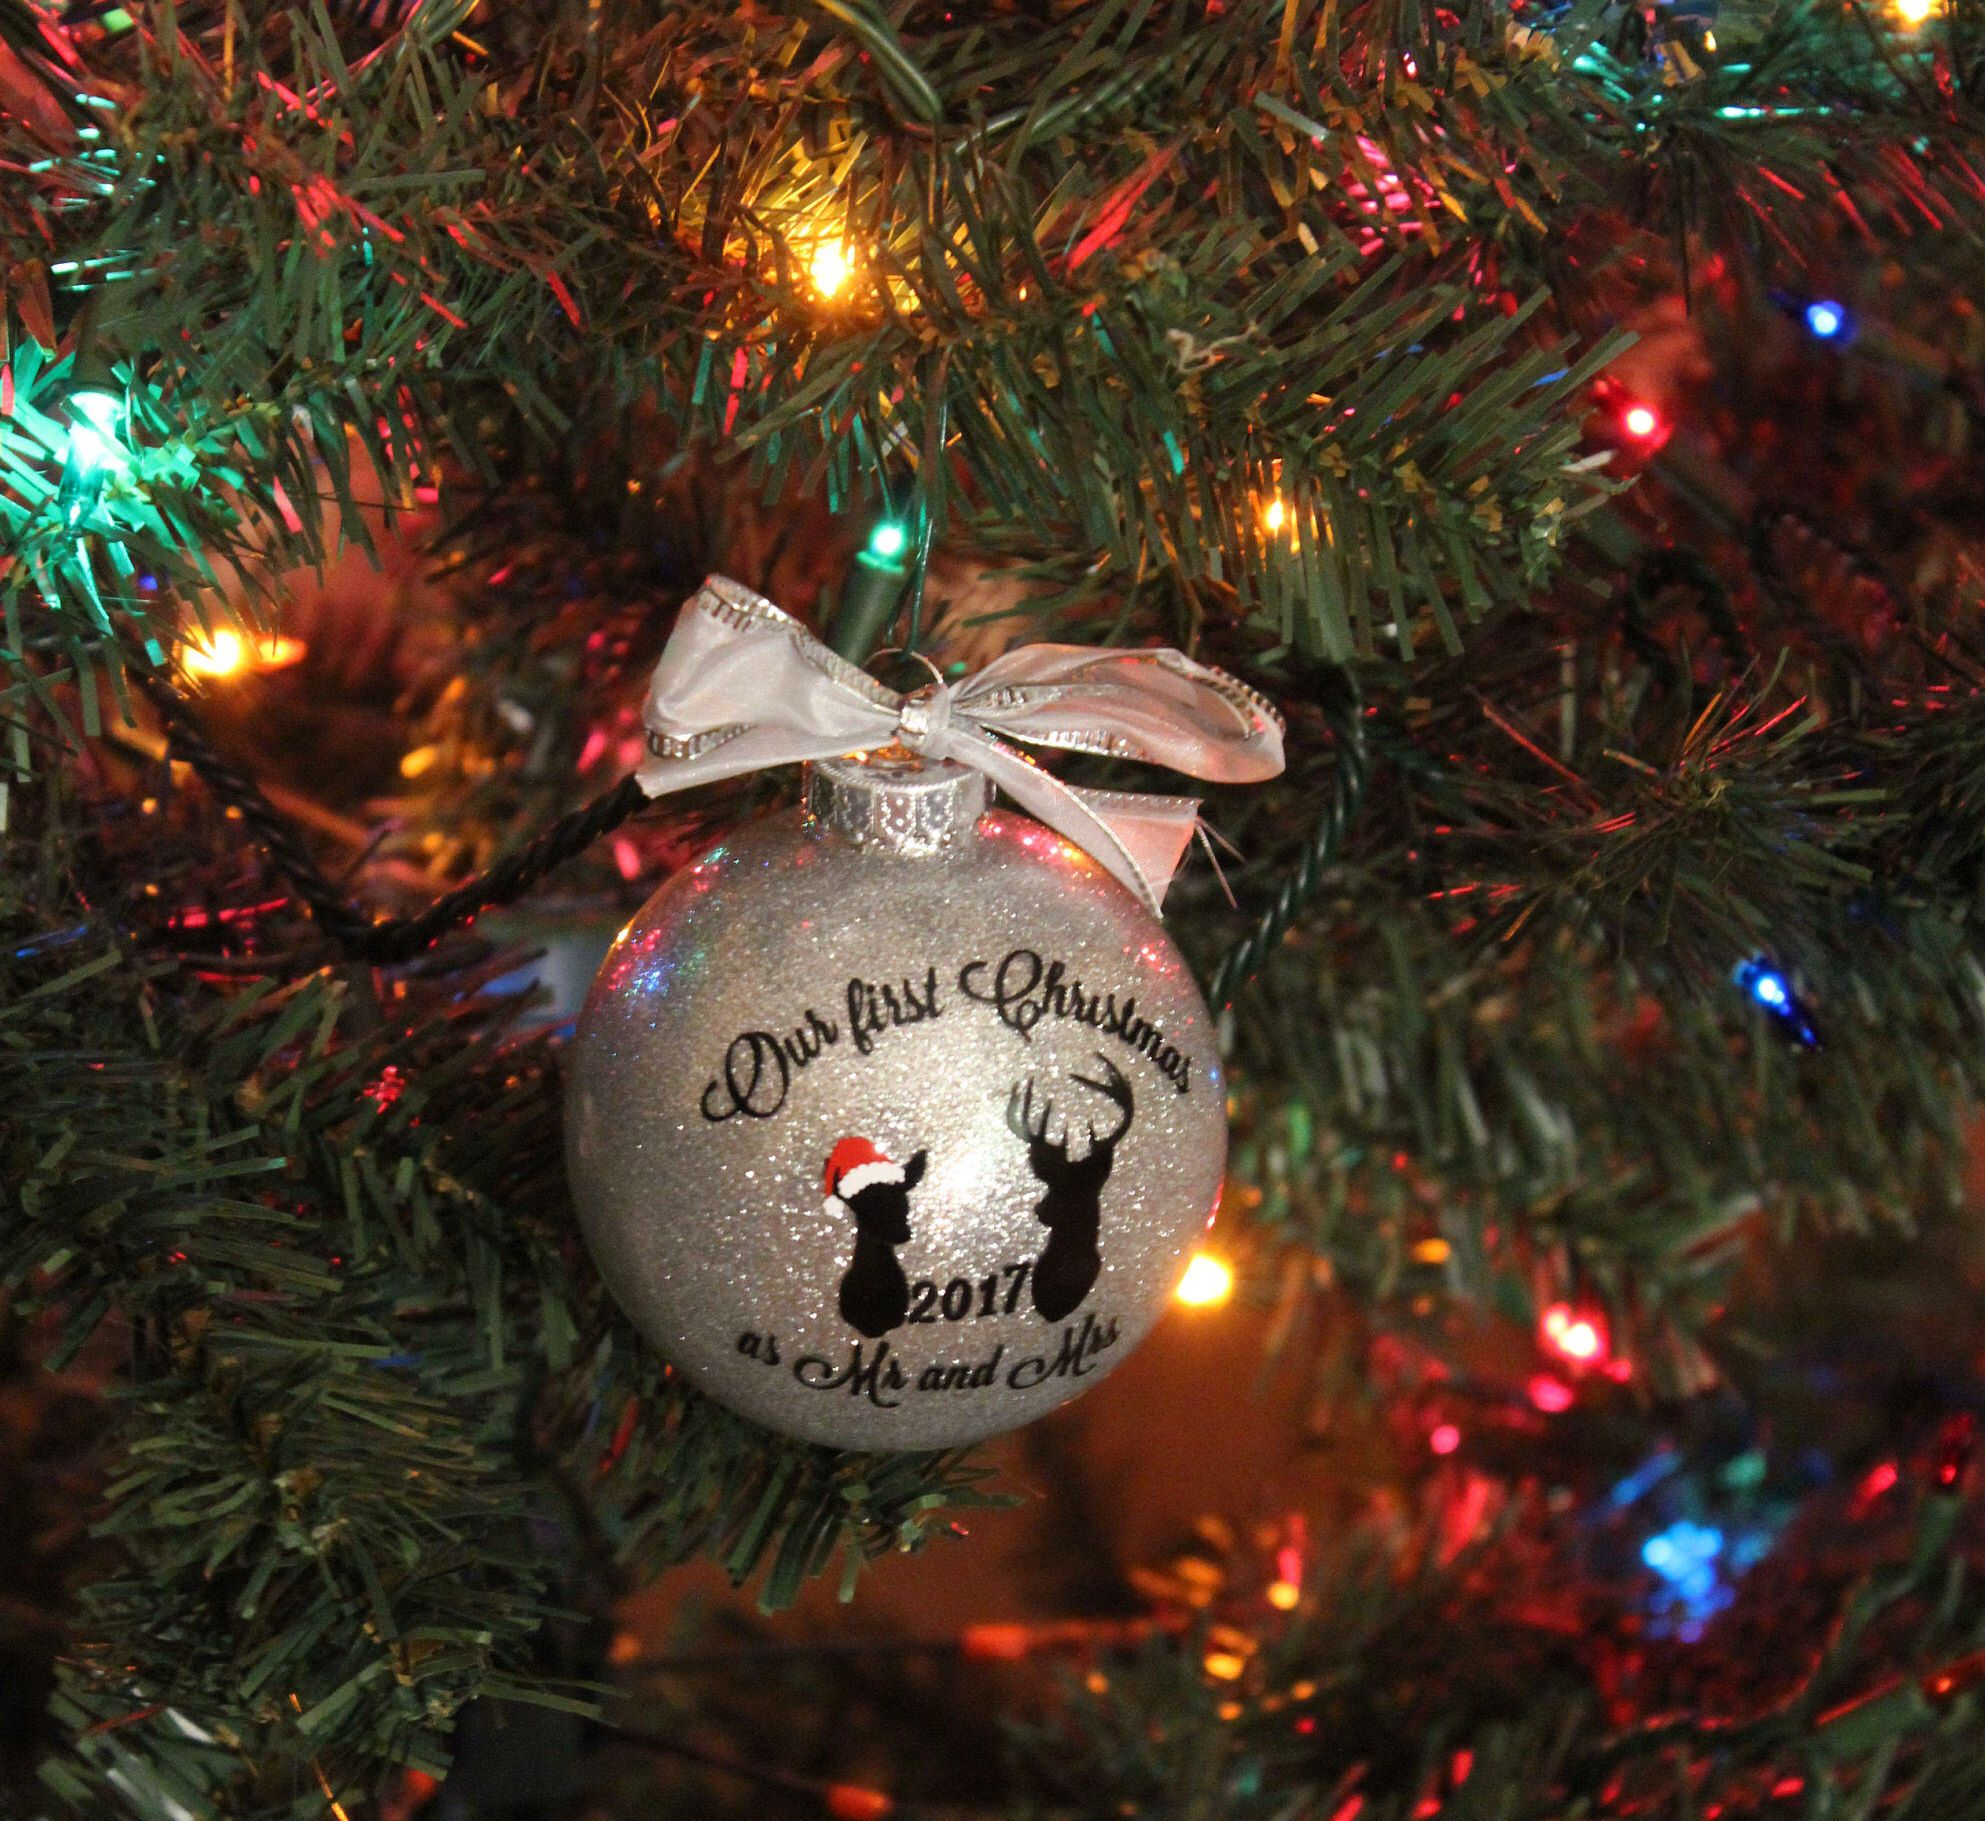 Our First Christmas As Mr And Mrs Ornament, Personalized Tree